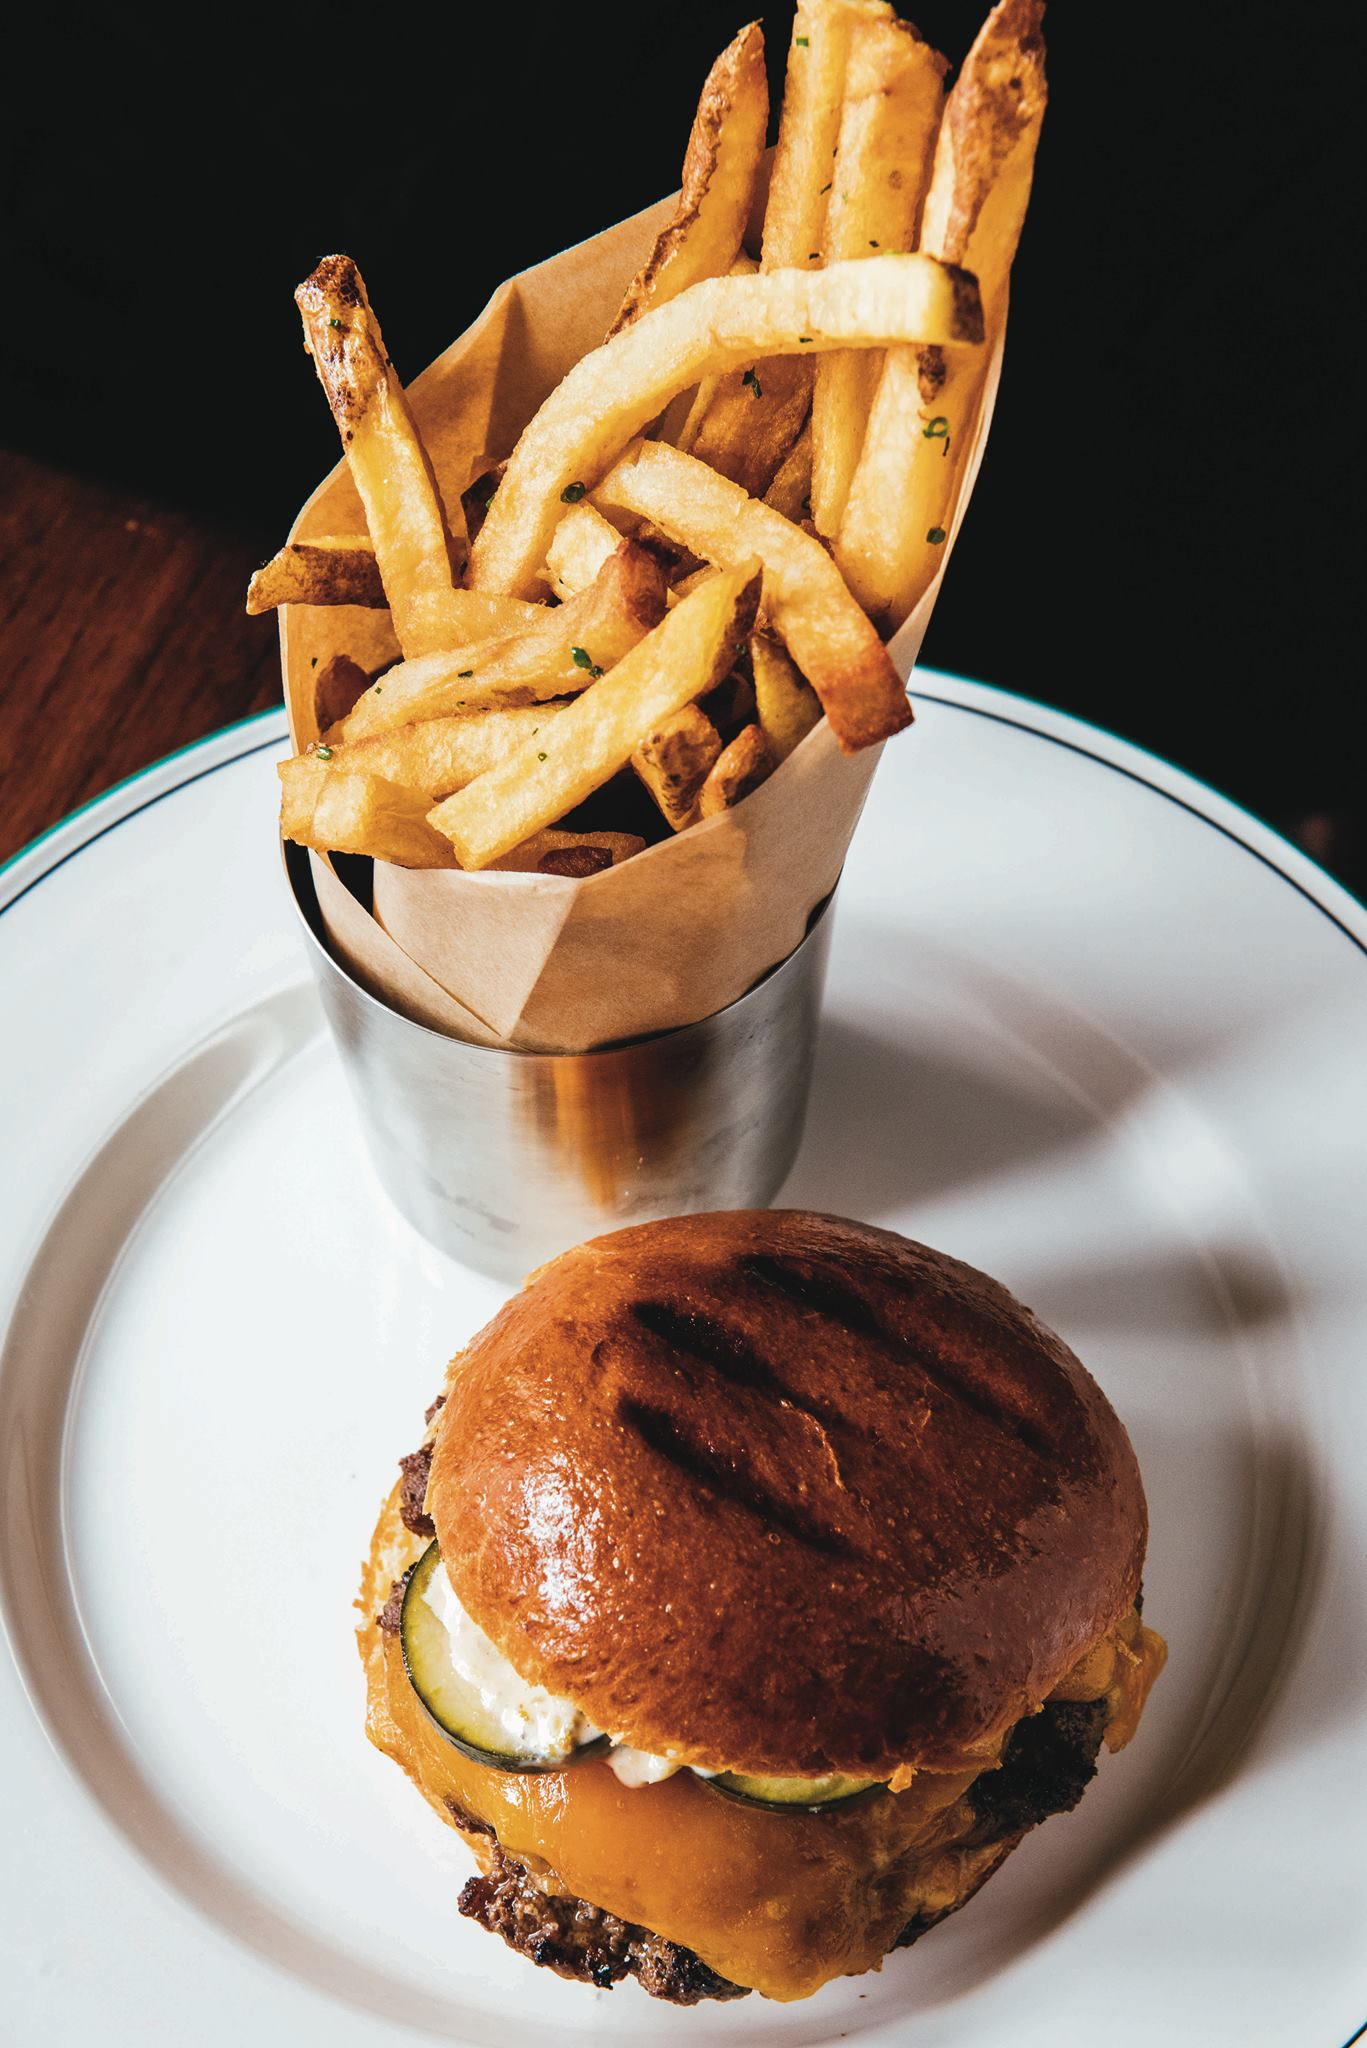 The juicy, flavorful burger at Balise comes on a toasted brioche bun. (Photo via Balise on Facebook)